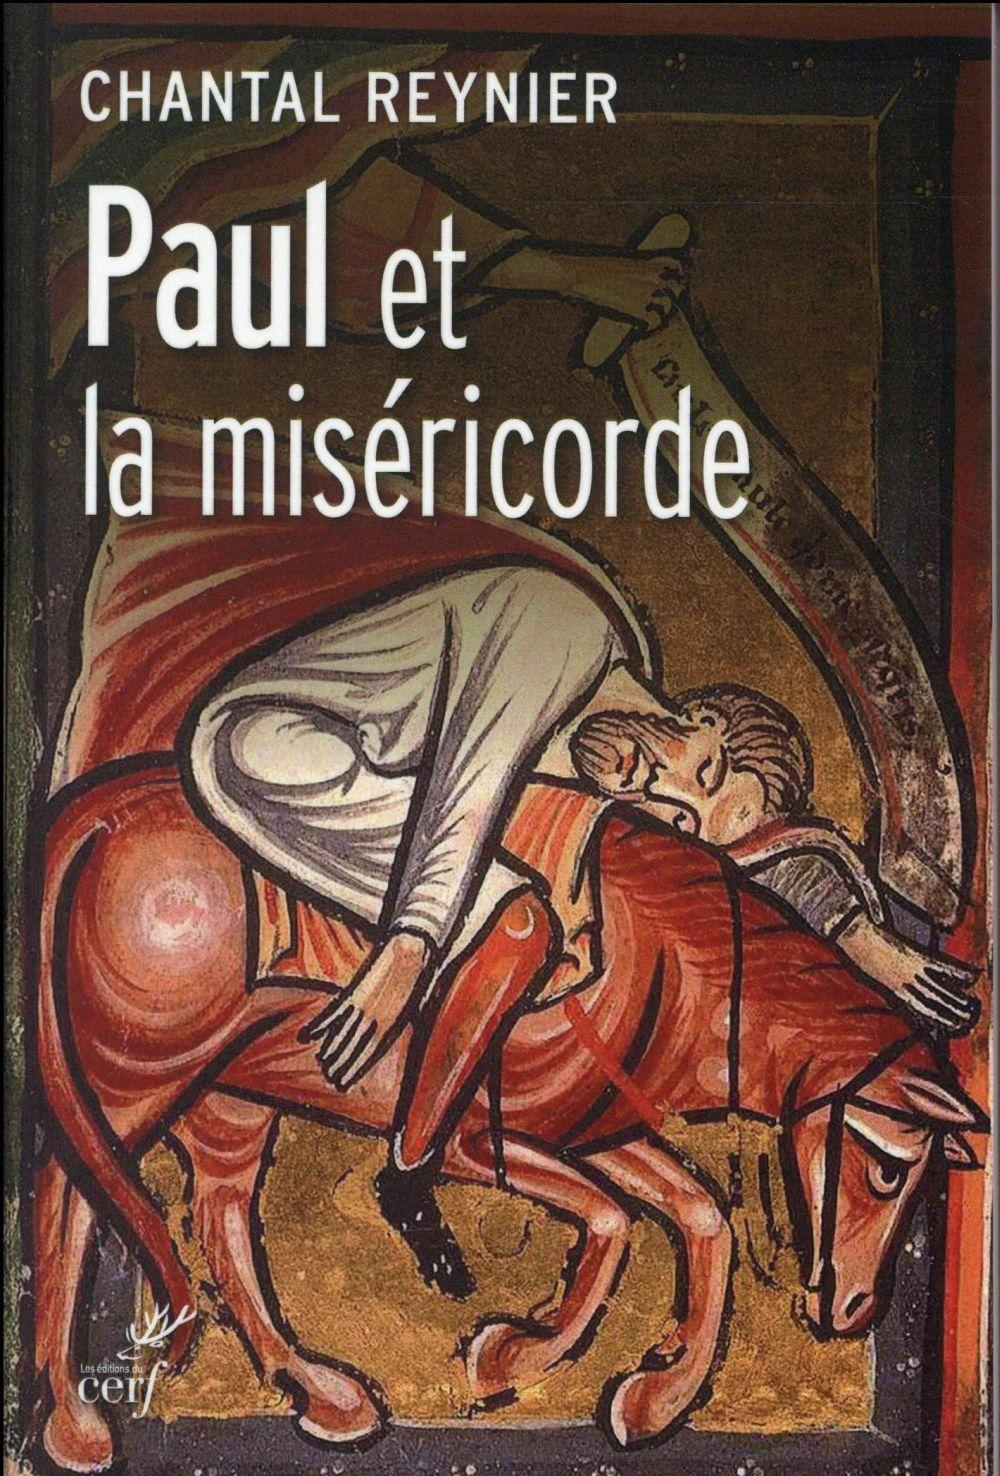 Vente Livre :                                    Paul et la miséricorde                                      - Chantal Reynier